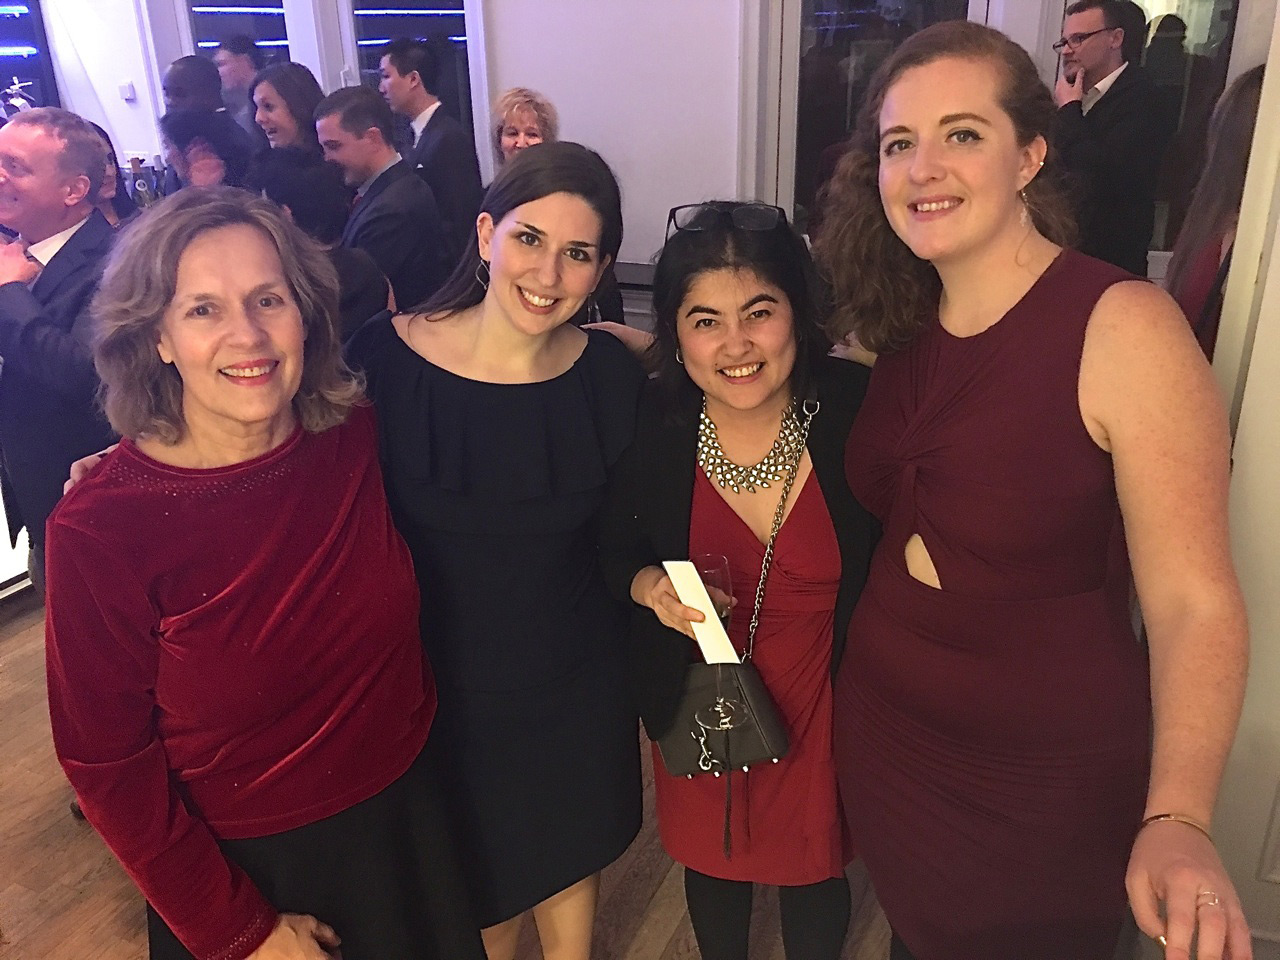 Dr. Gudas and others at a holiday party.